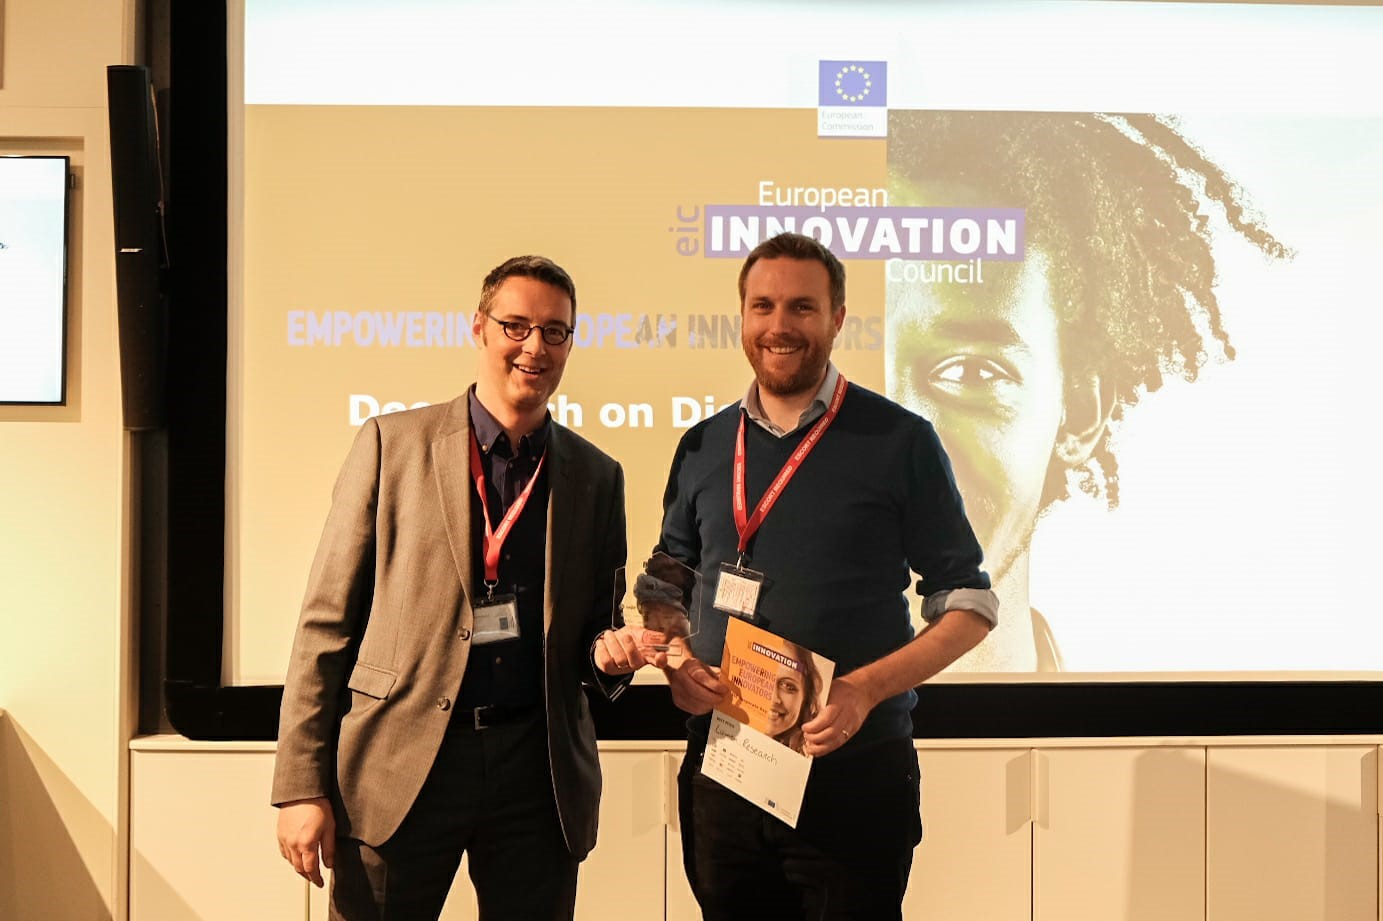 european innovation council award.jpg